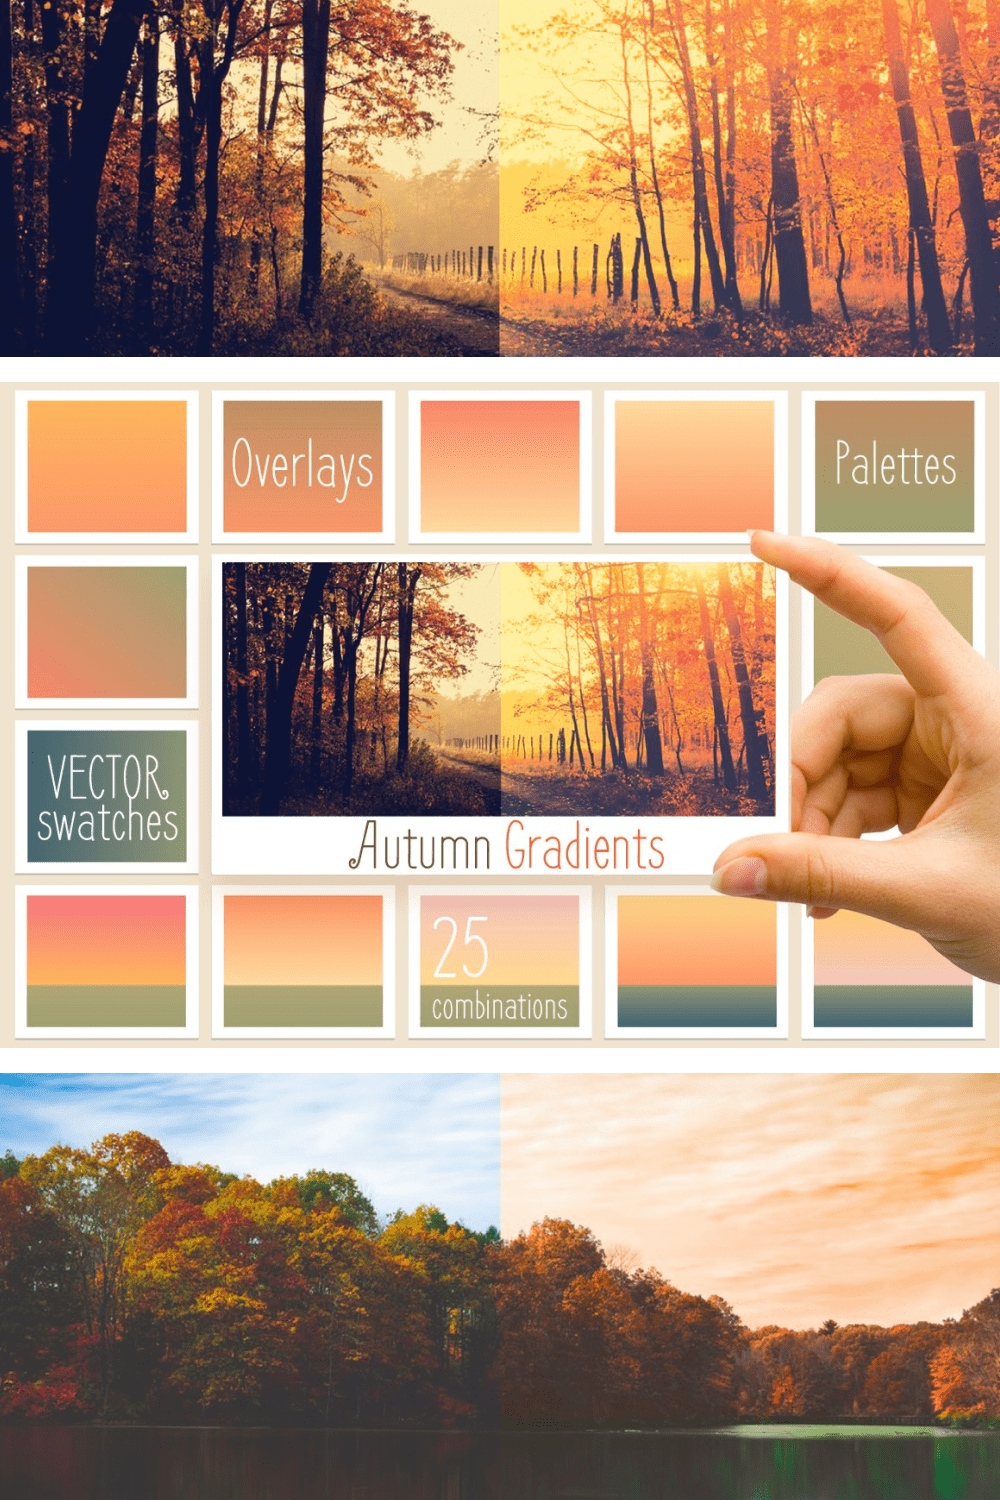 Autumn colors are conveyed through a gradient.